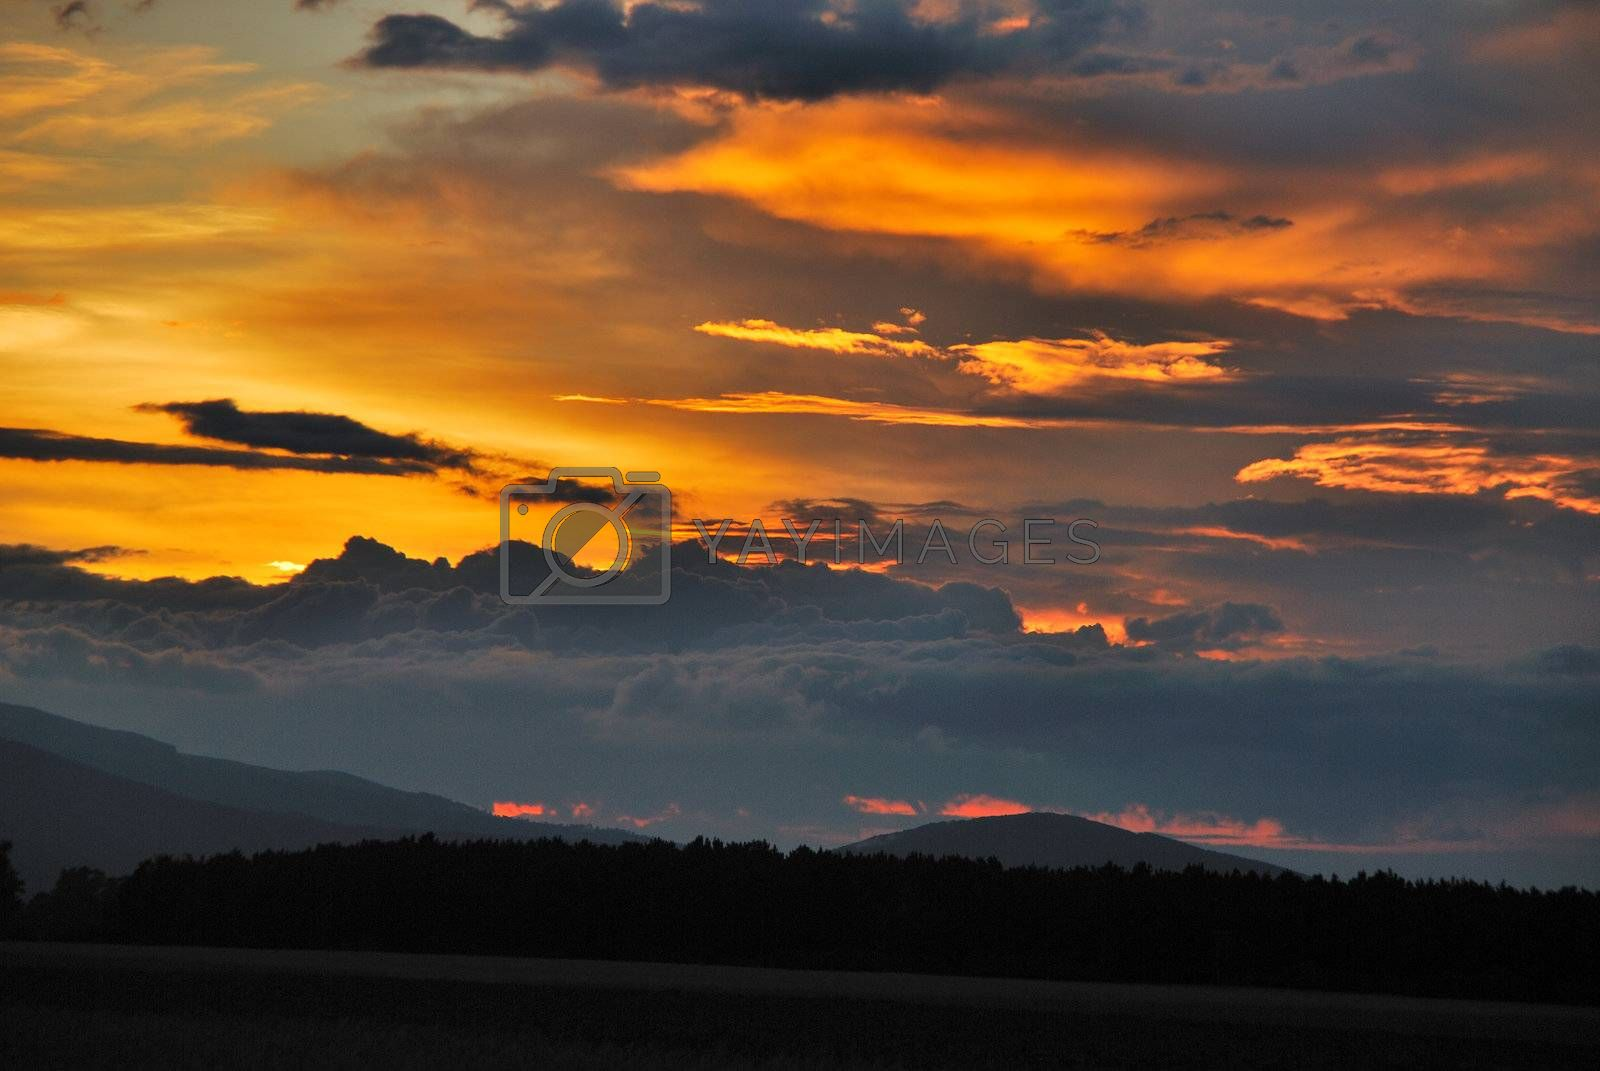 beautiful sunset with clouds and mountains